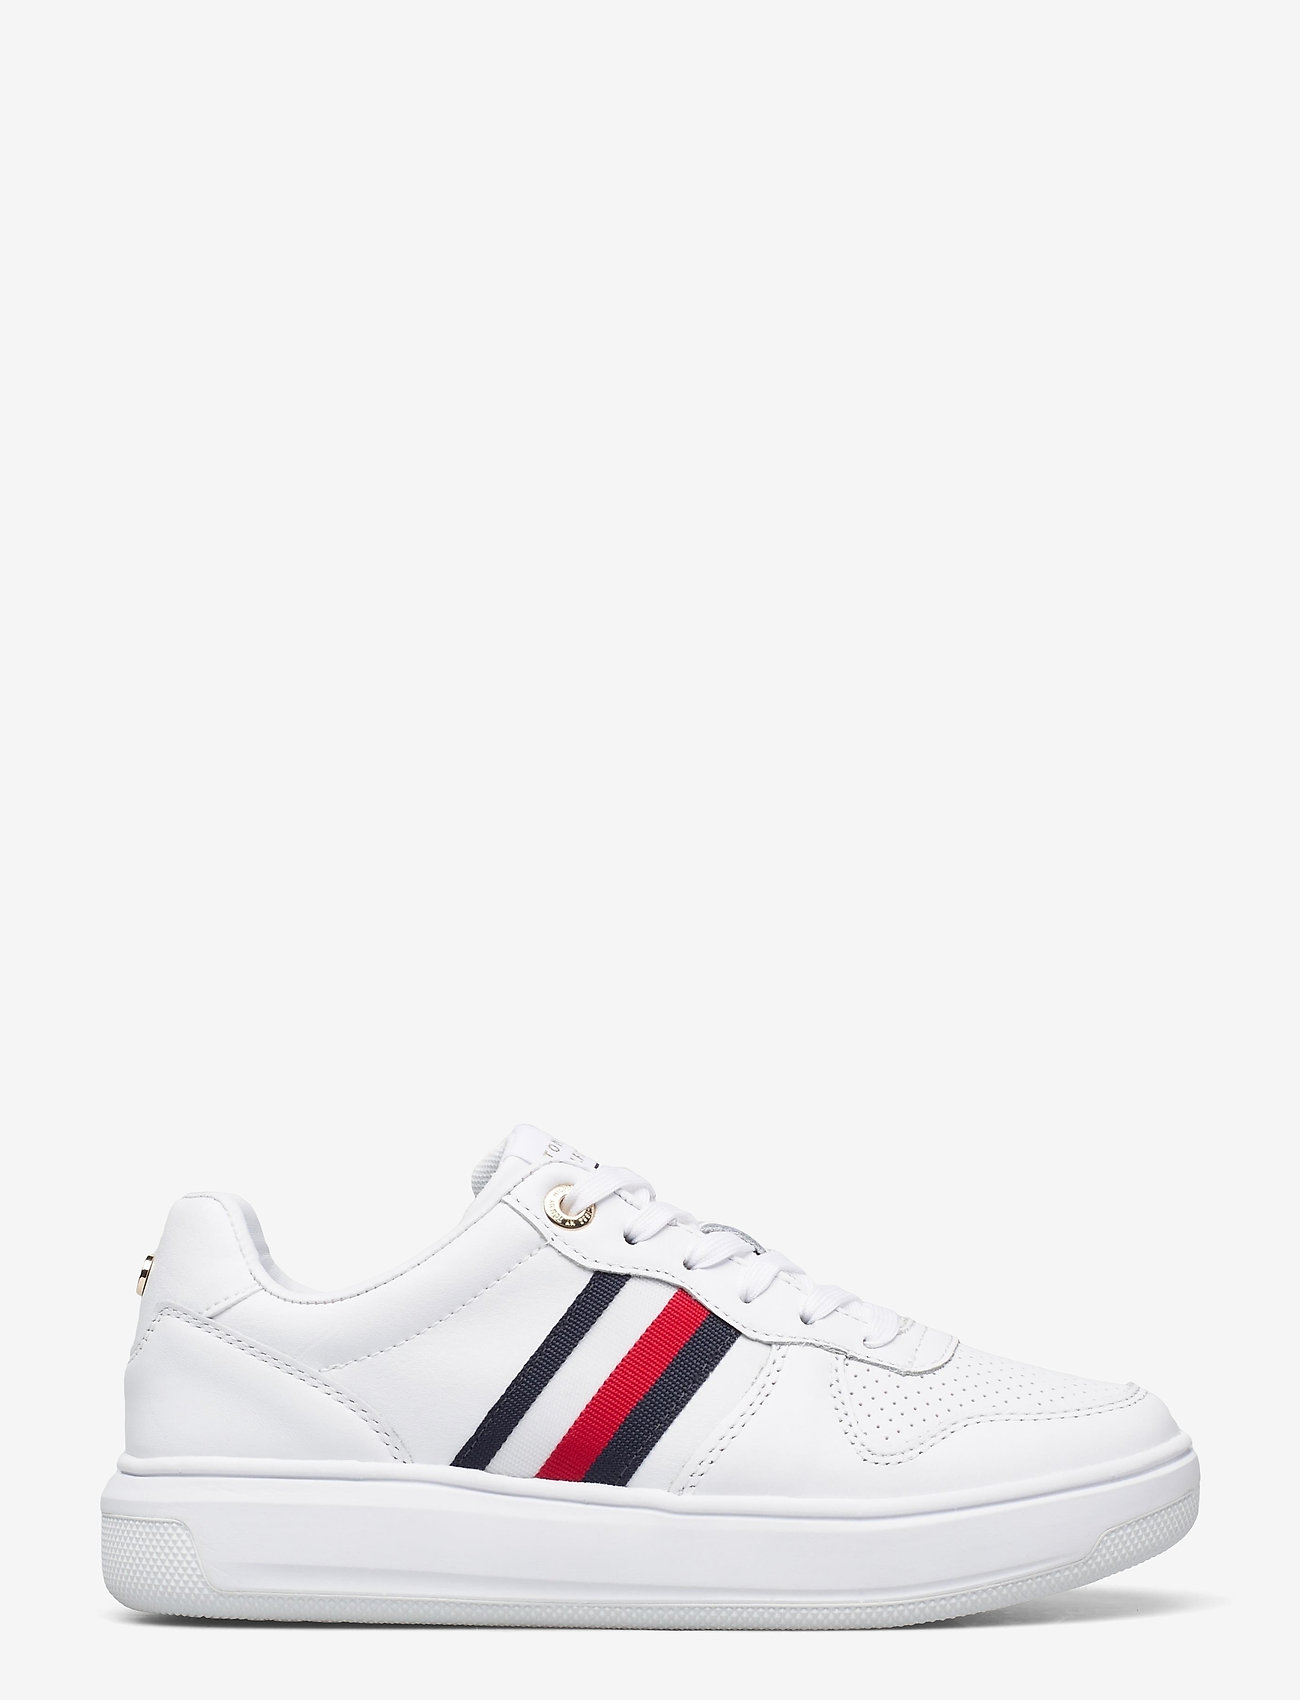 Tommy Hilfiger - TOMMY TAPE LEATHER CUPSOLE - low top sneakers - white - 1